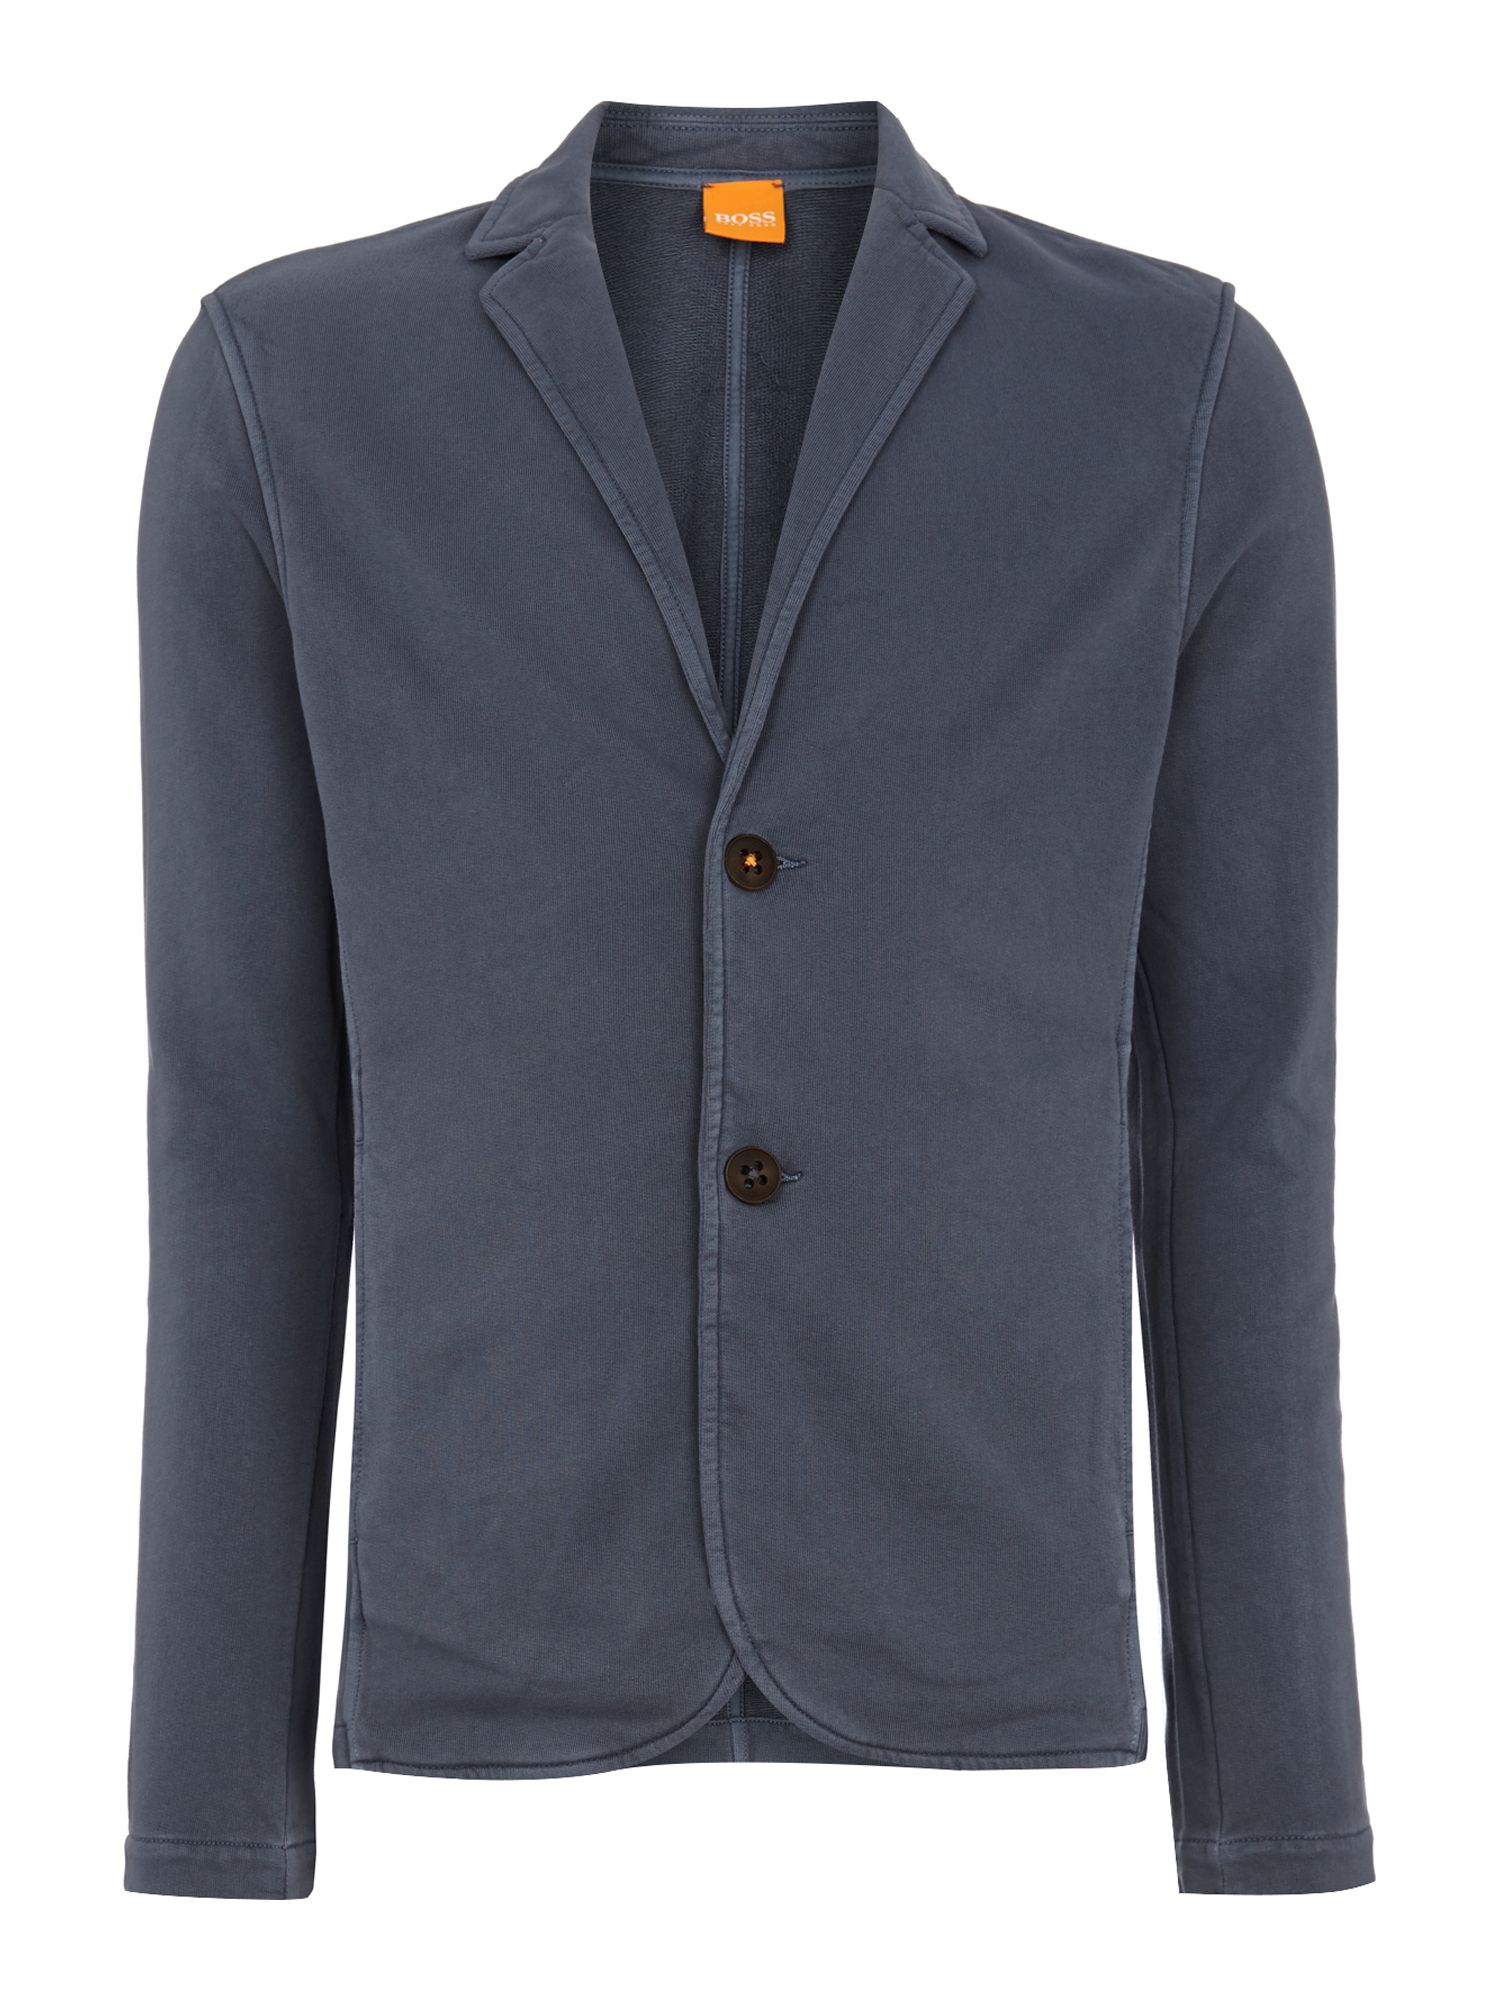 Two pocket jersey blazer